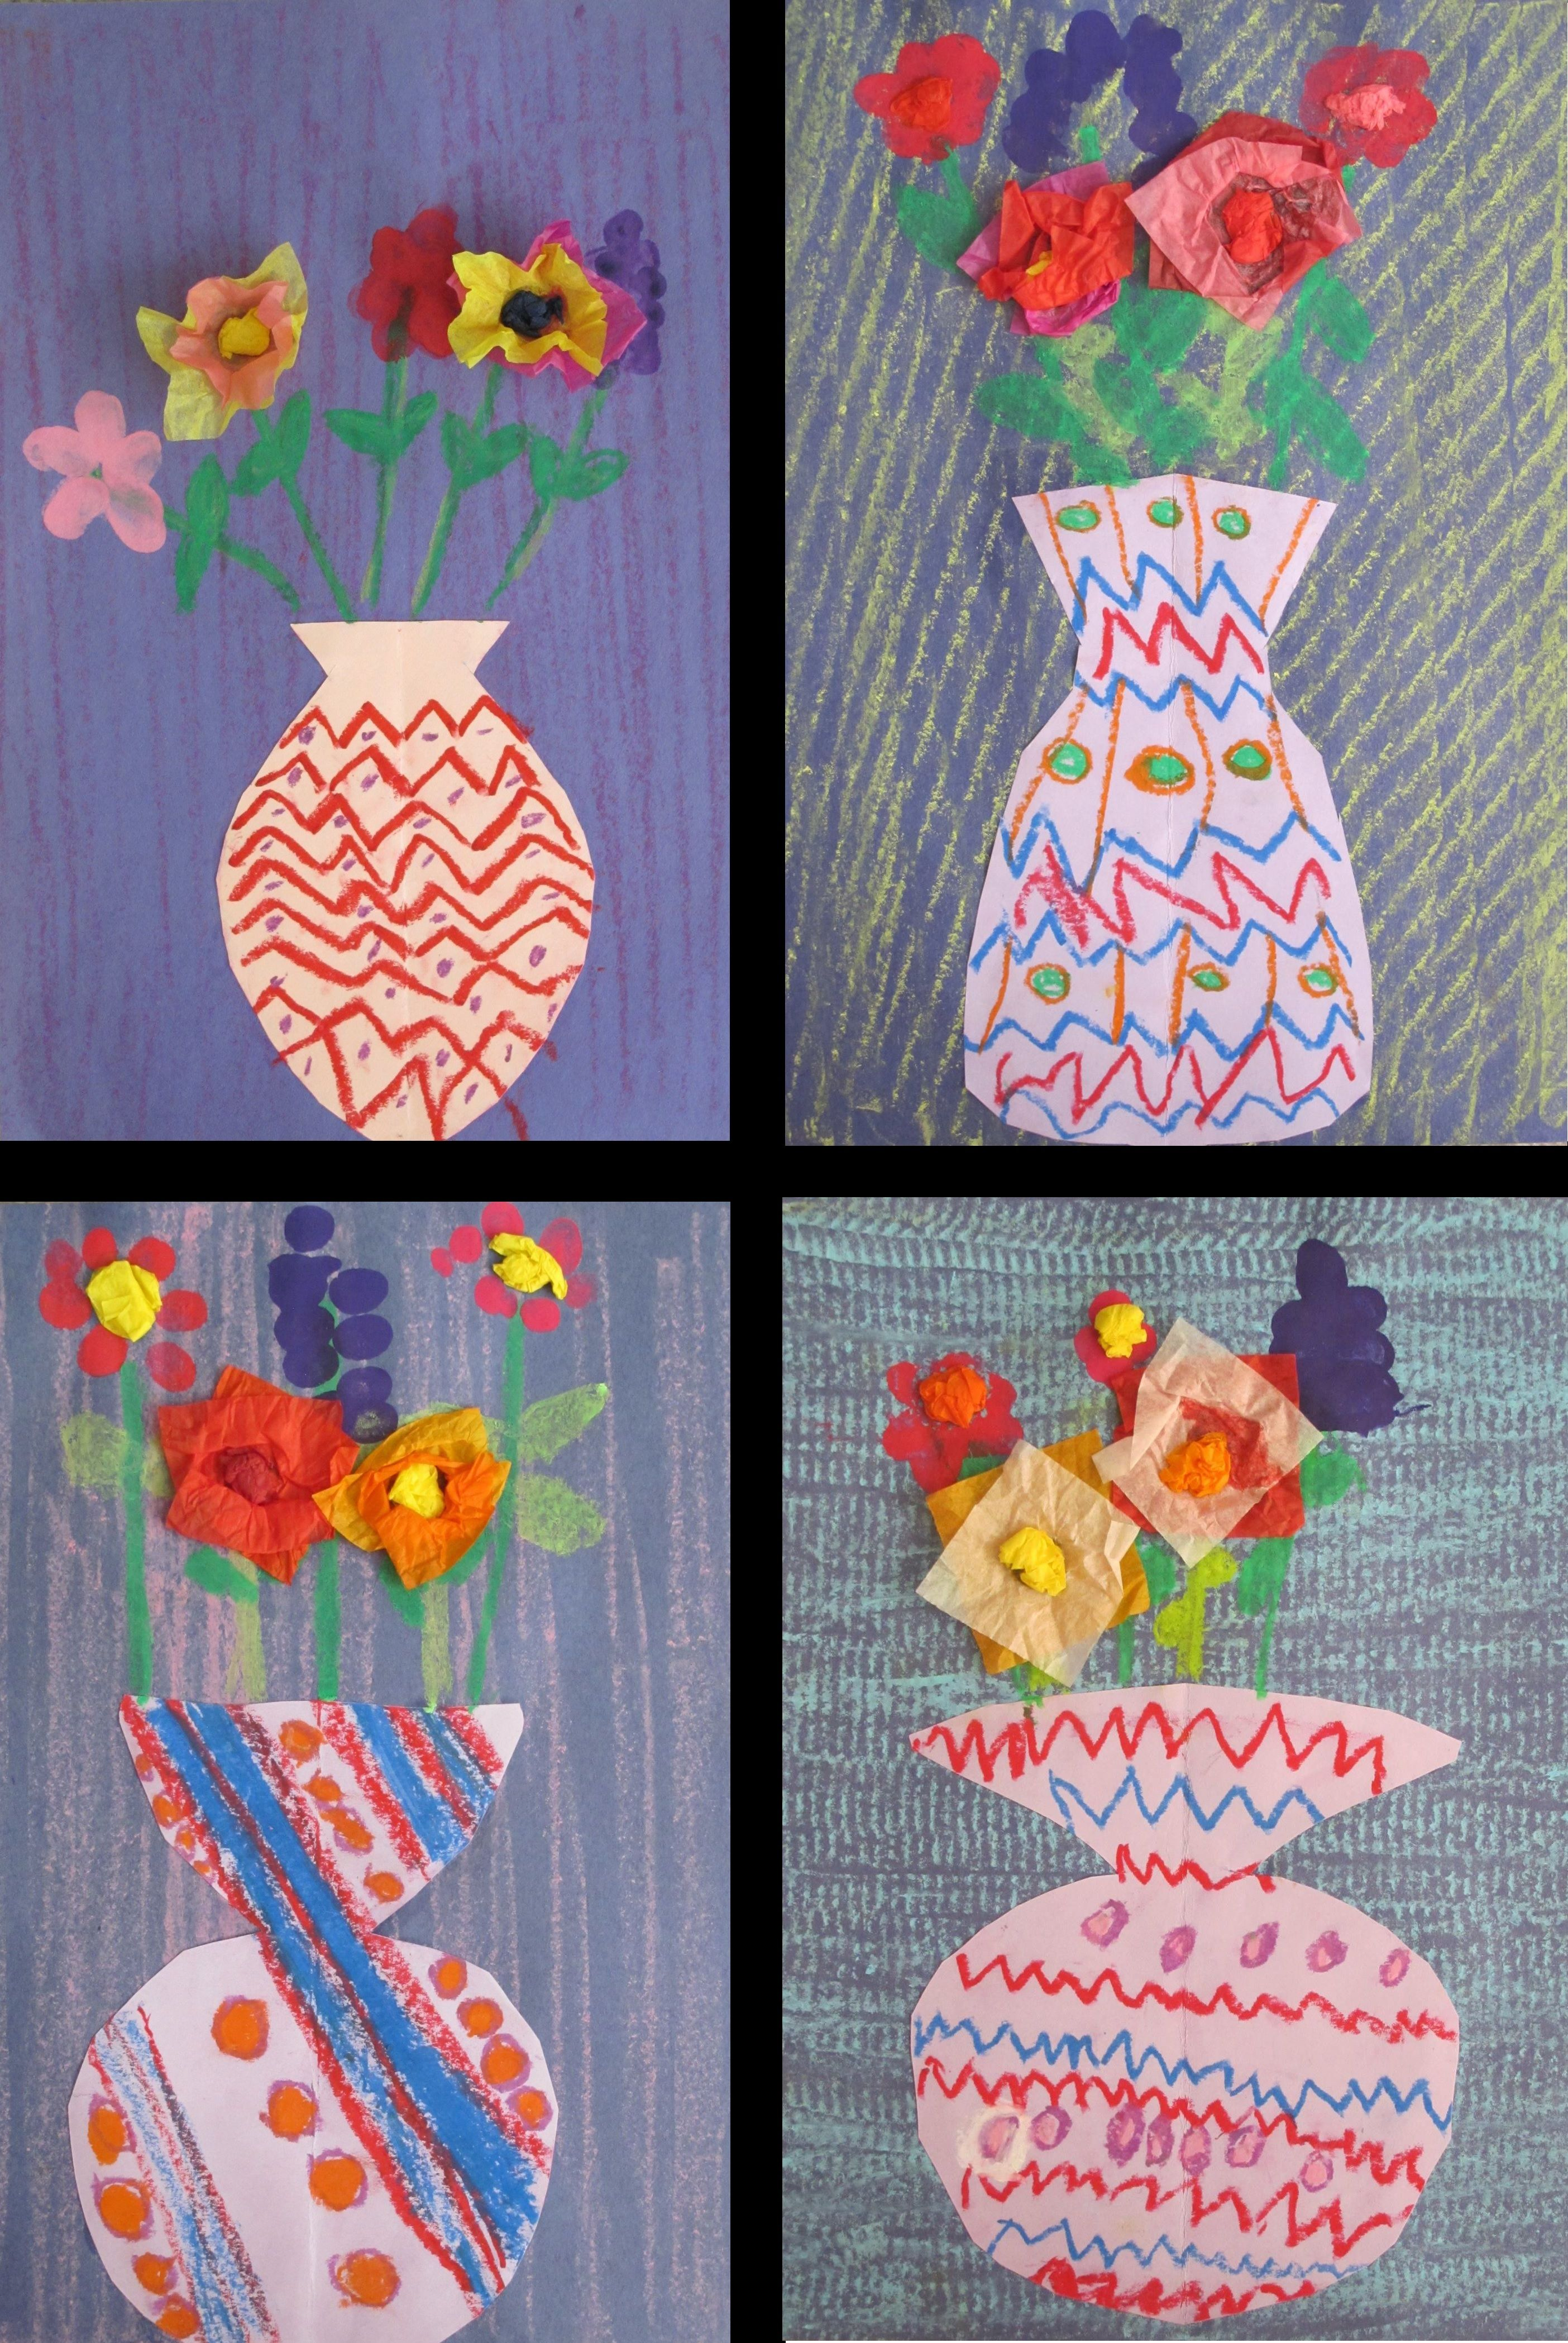 Kindergarten Vases Symmetry Pattern Texture With